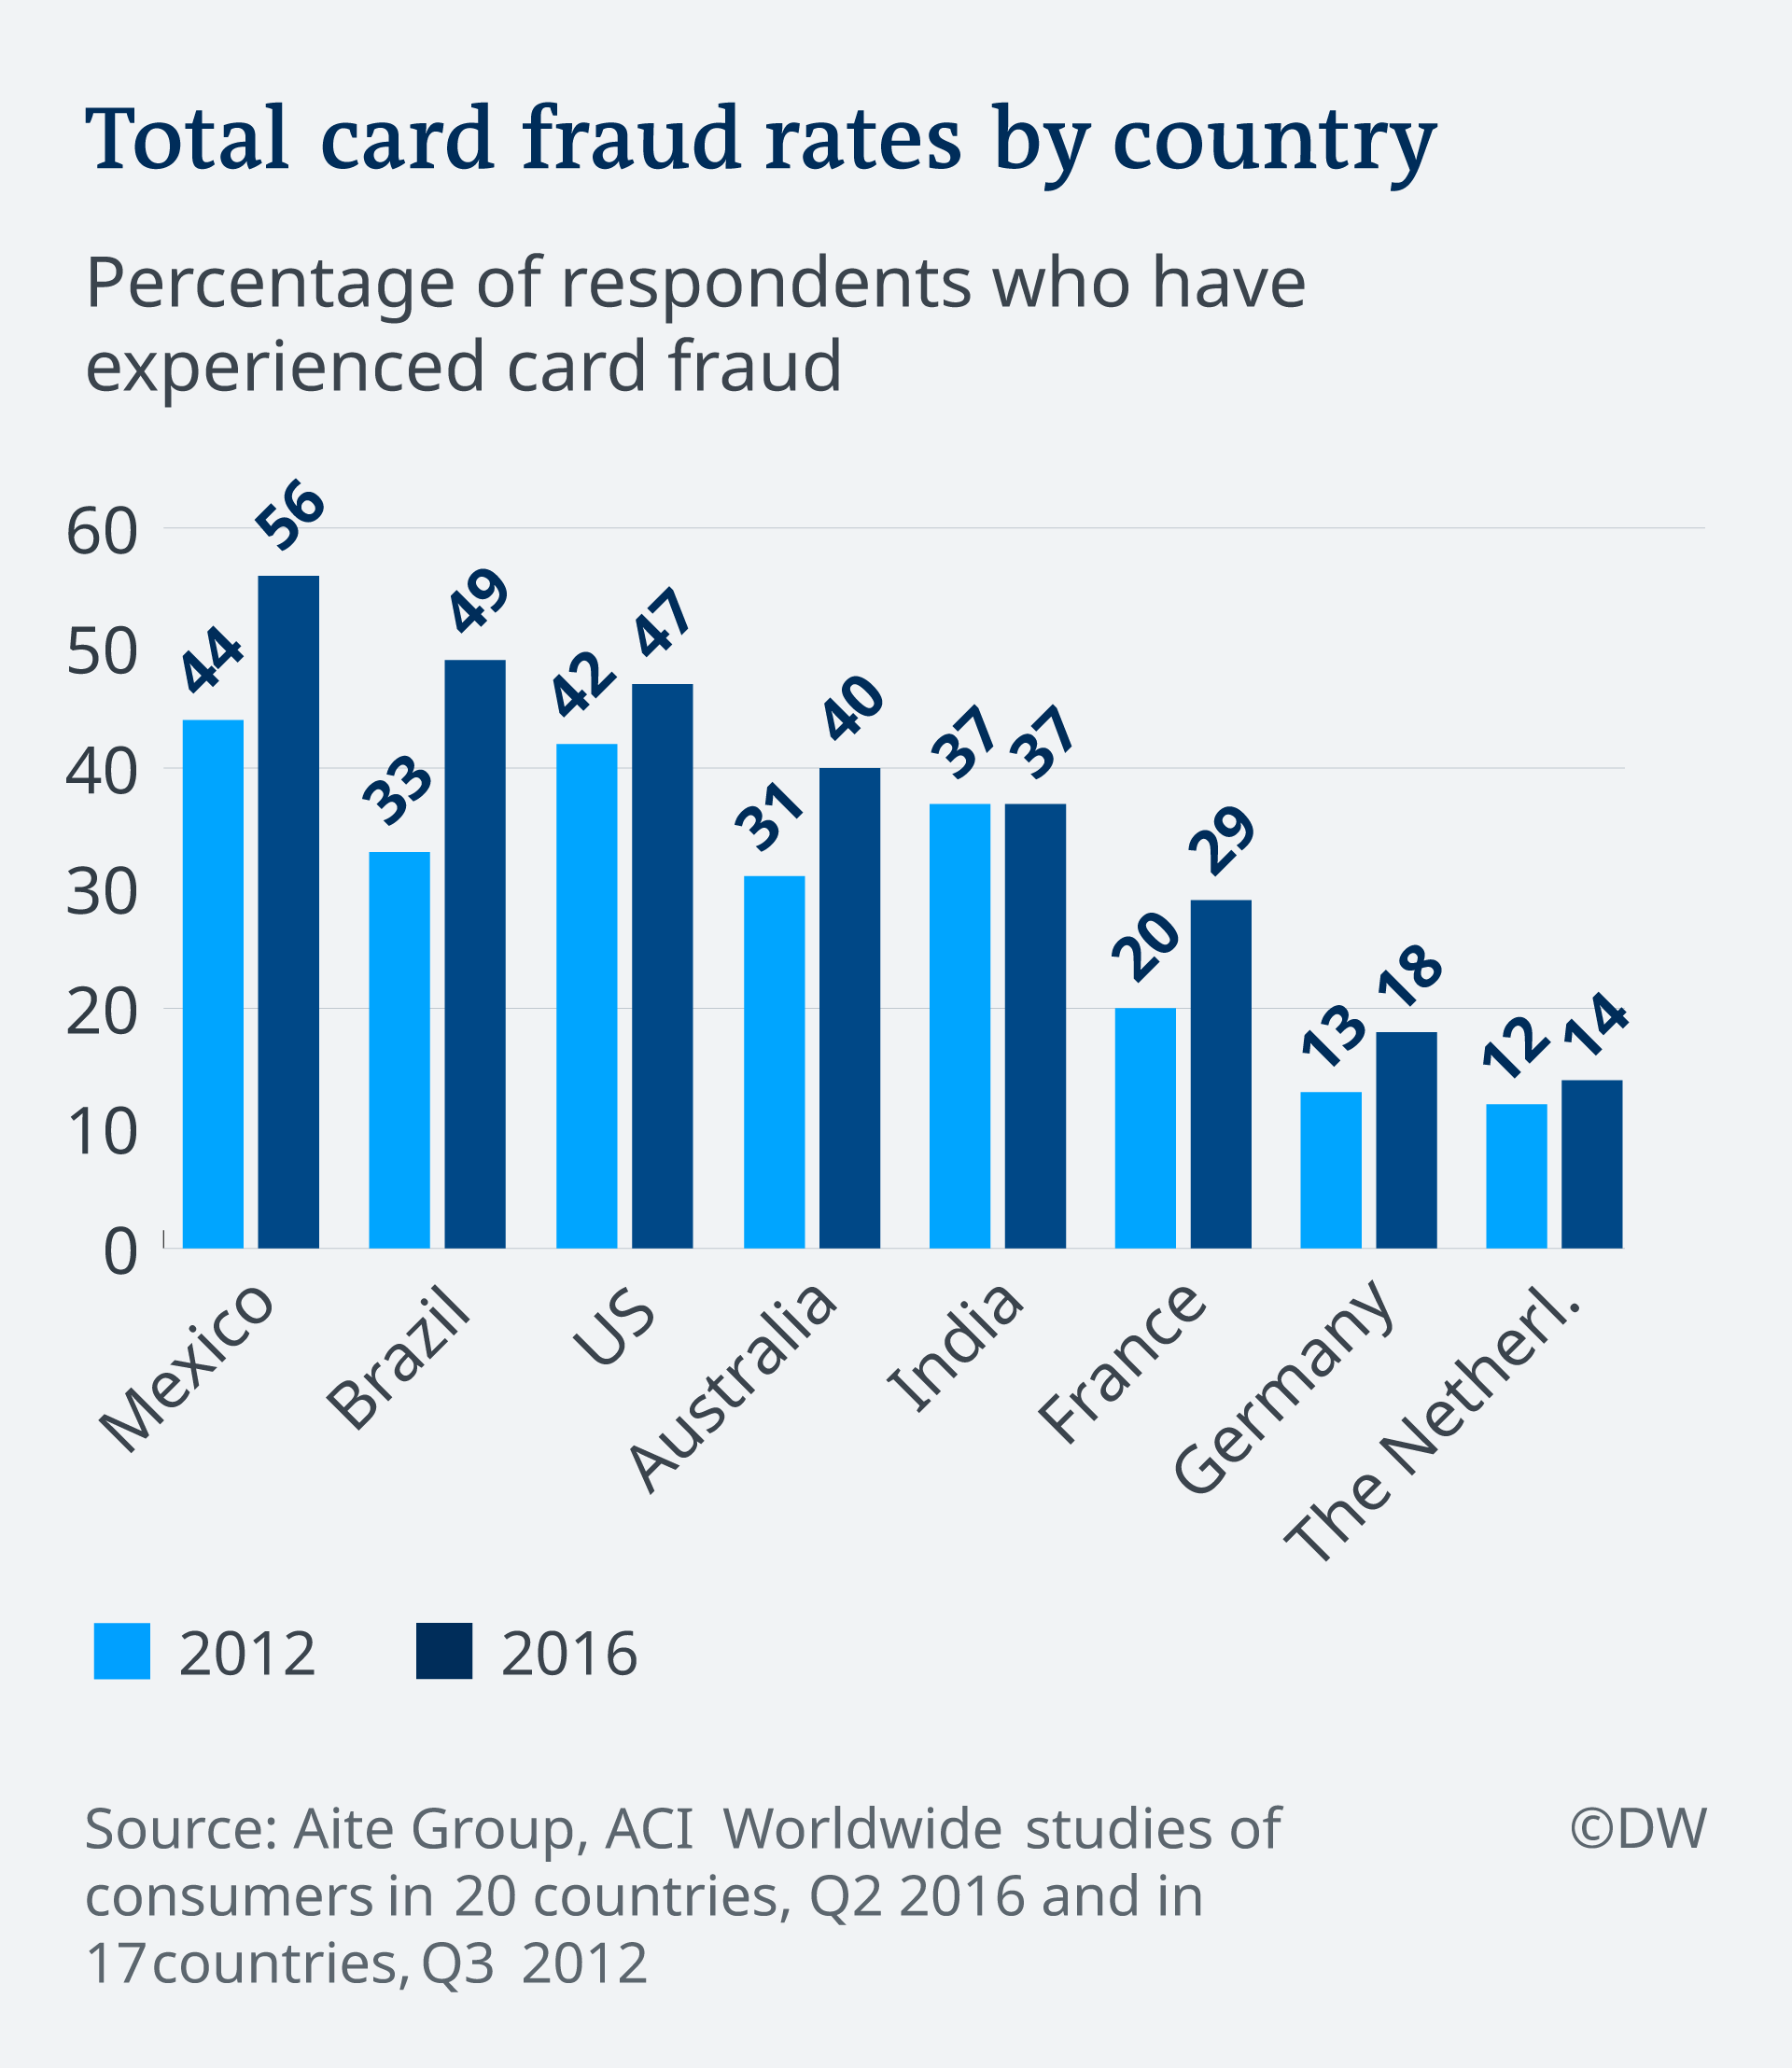 A graphic showing total card fraud rates by country